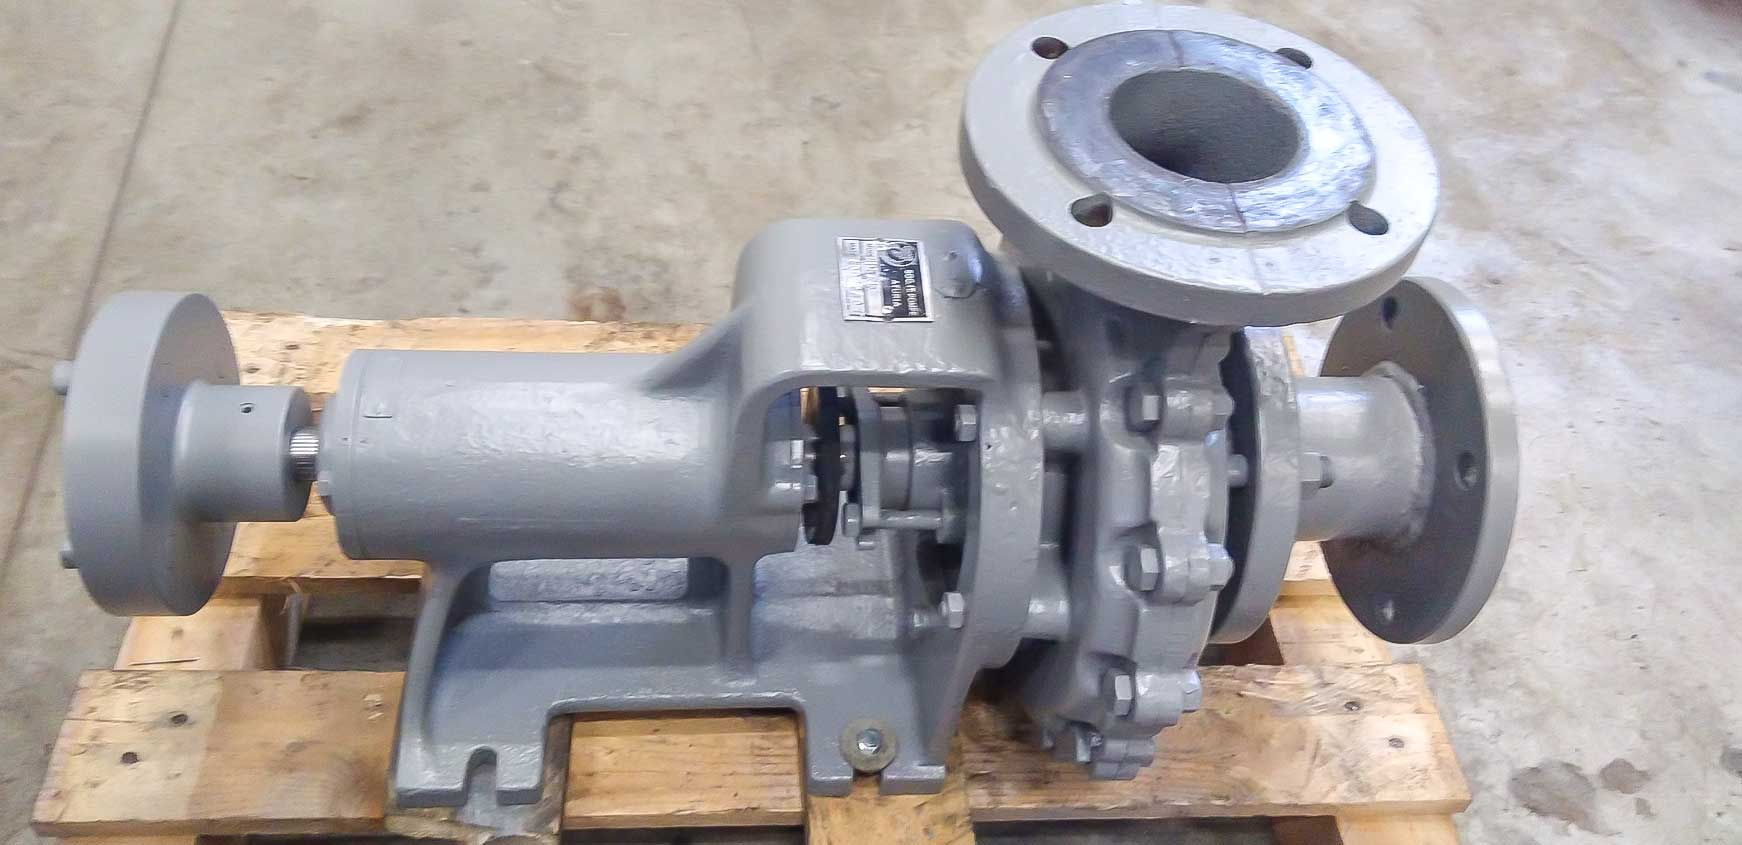 Rotos pump repair